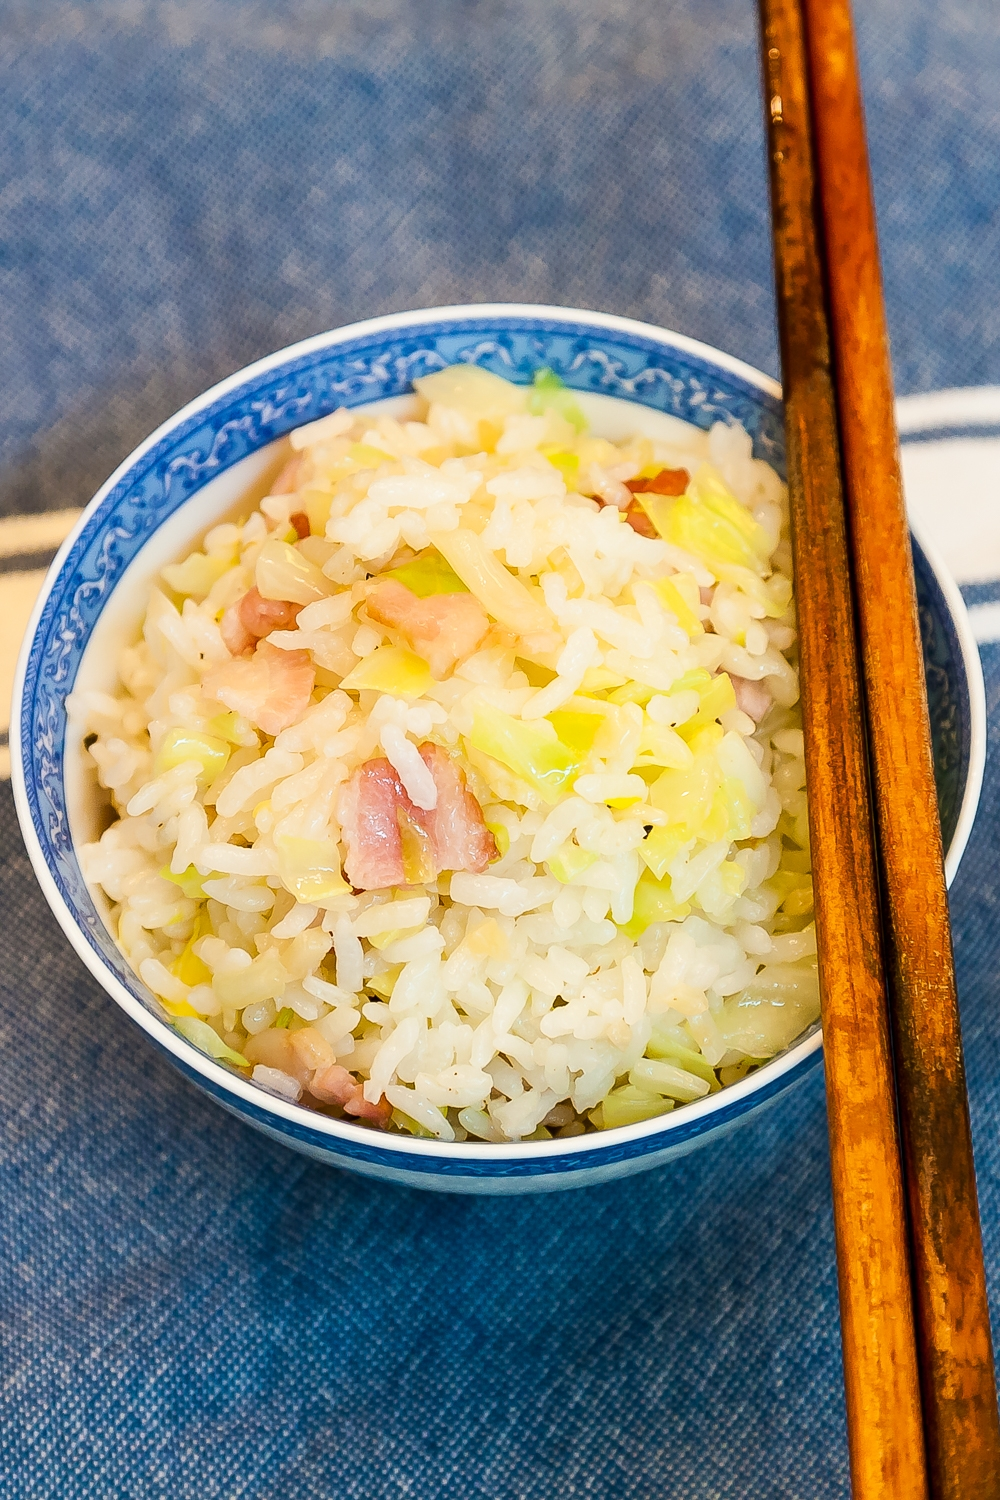 Cabbage Bacon Garlic Fried Rice - Completed Dish